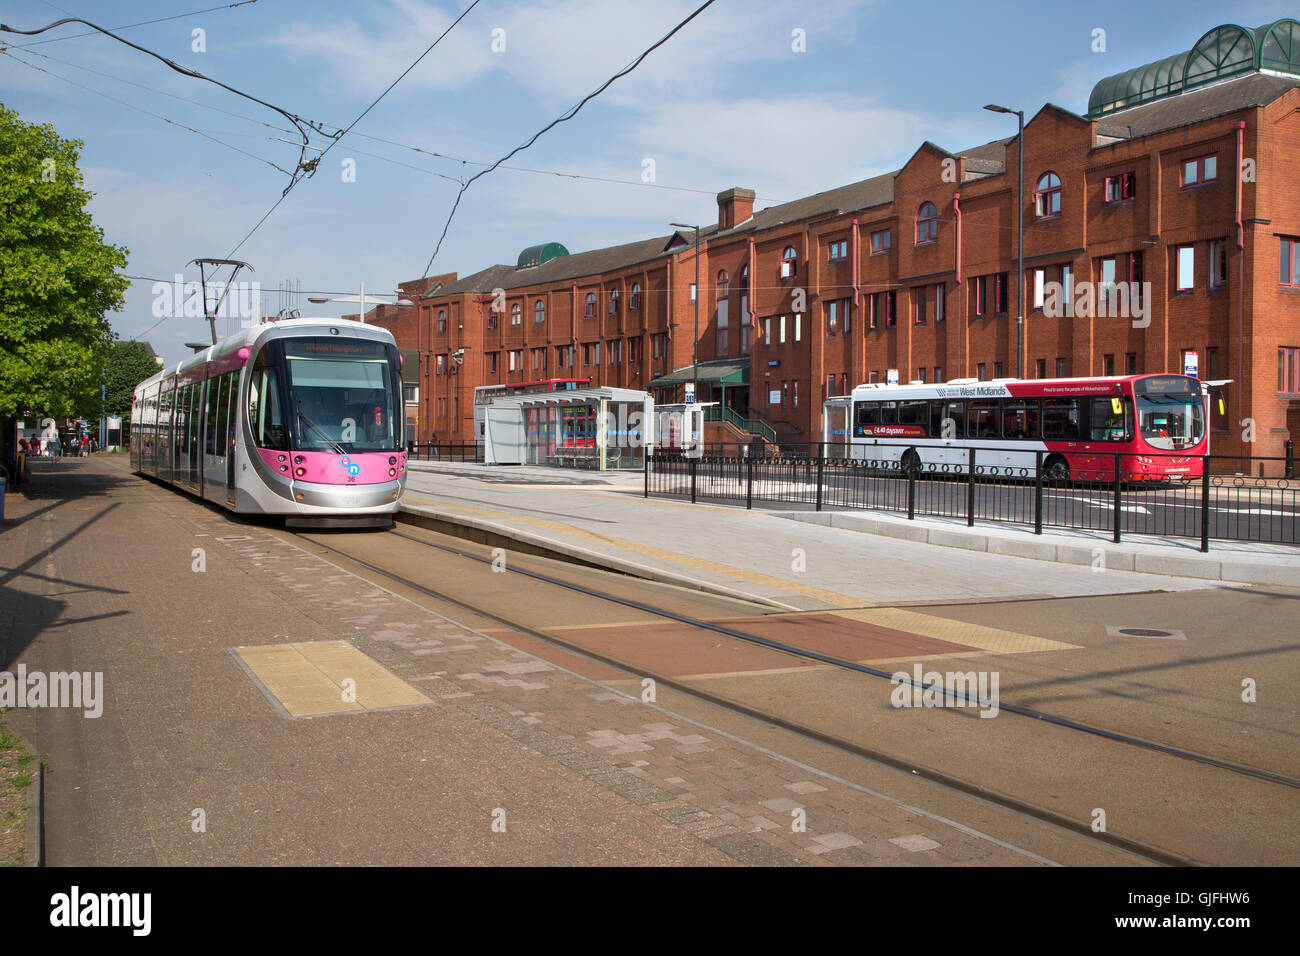 Tram at the Wolverhampton St George's tram stop on Bilston Street in Wolverhampton, England - Stock Image